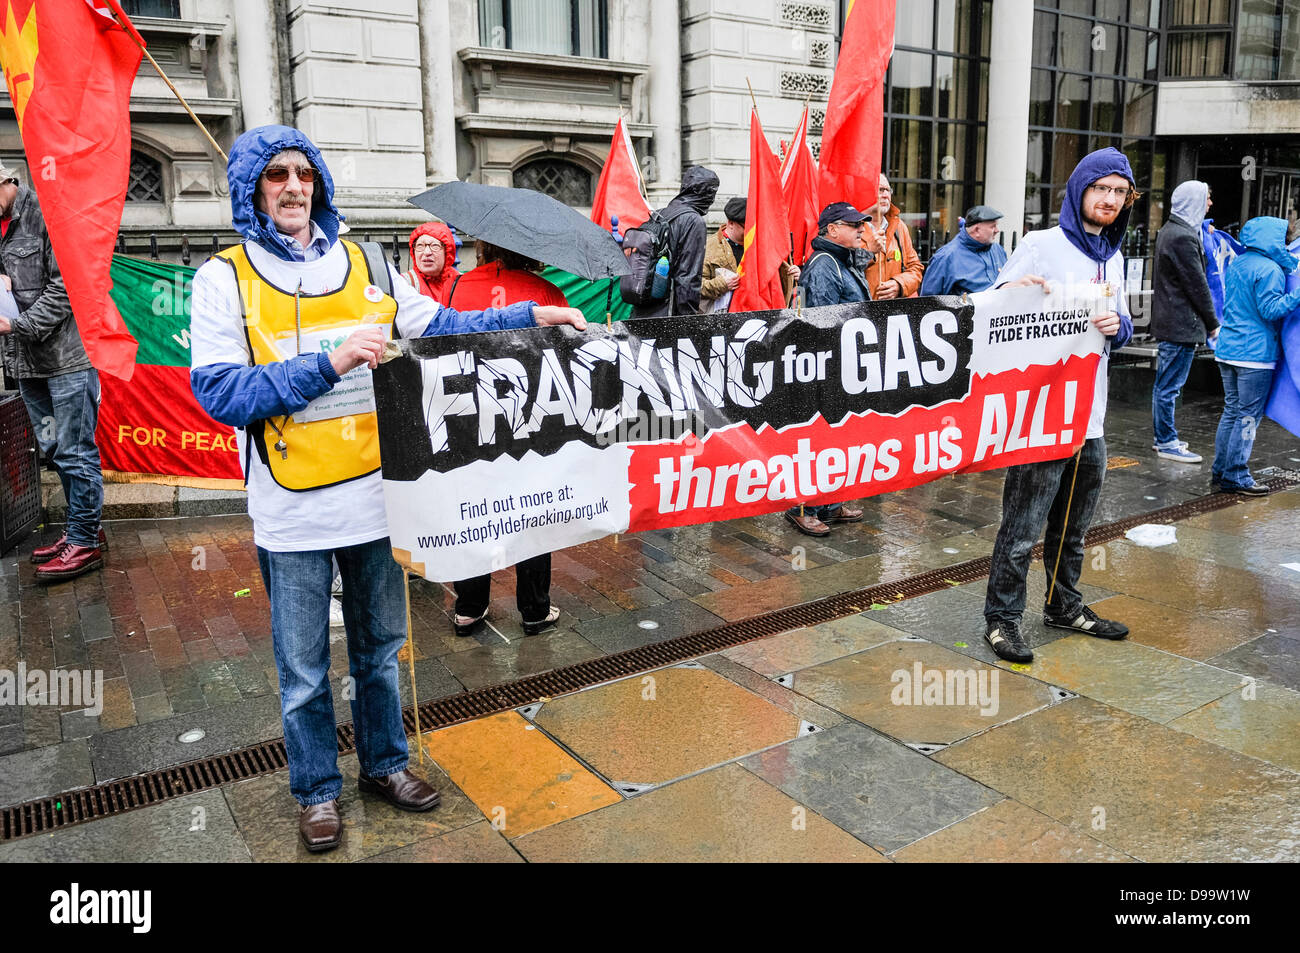 Belfast, Northern Ireland. 15th June 2013. Protesters call for an end to fracking at an anti-G8 protest organised - Stock Image